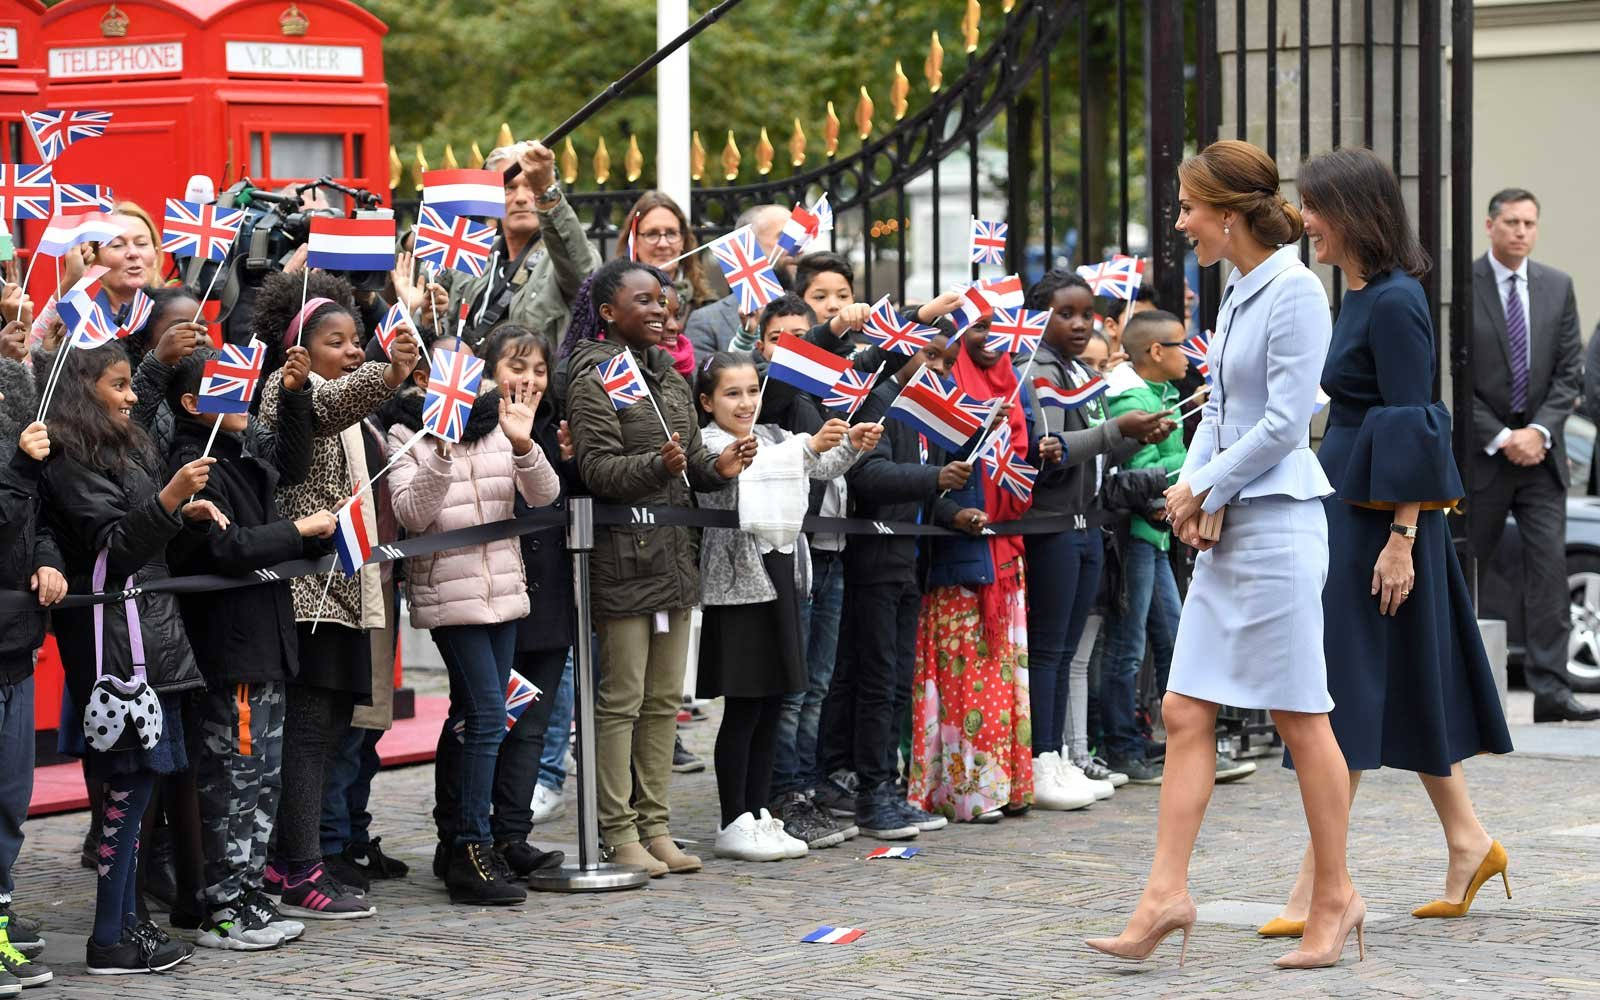 Kate Middleton traveling by herself for the first time as a royal